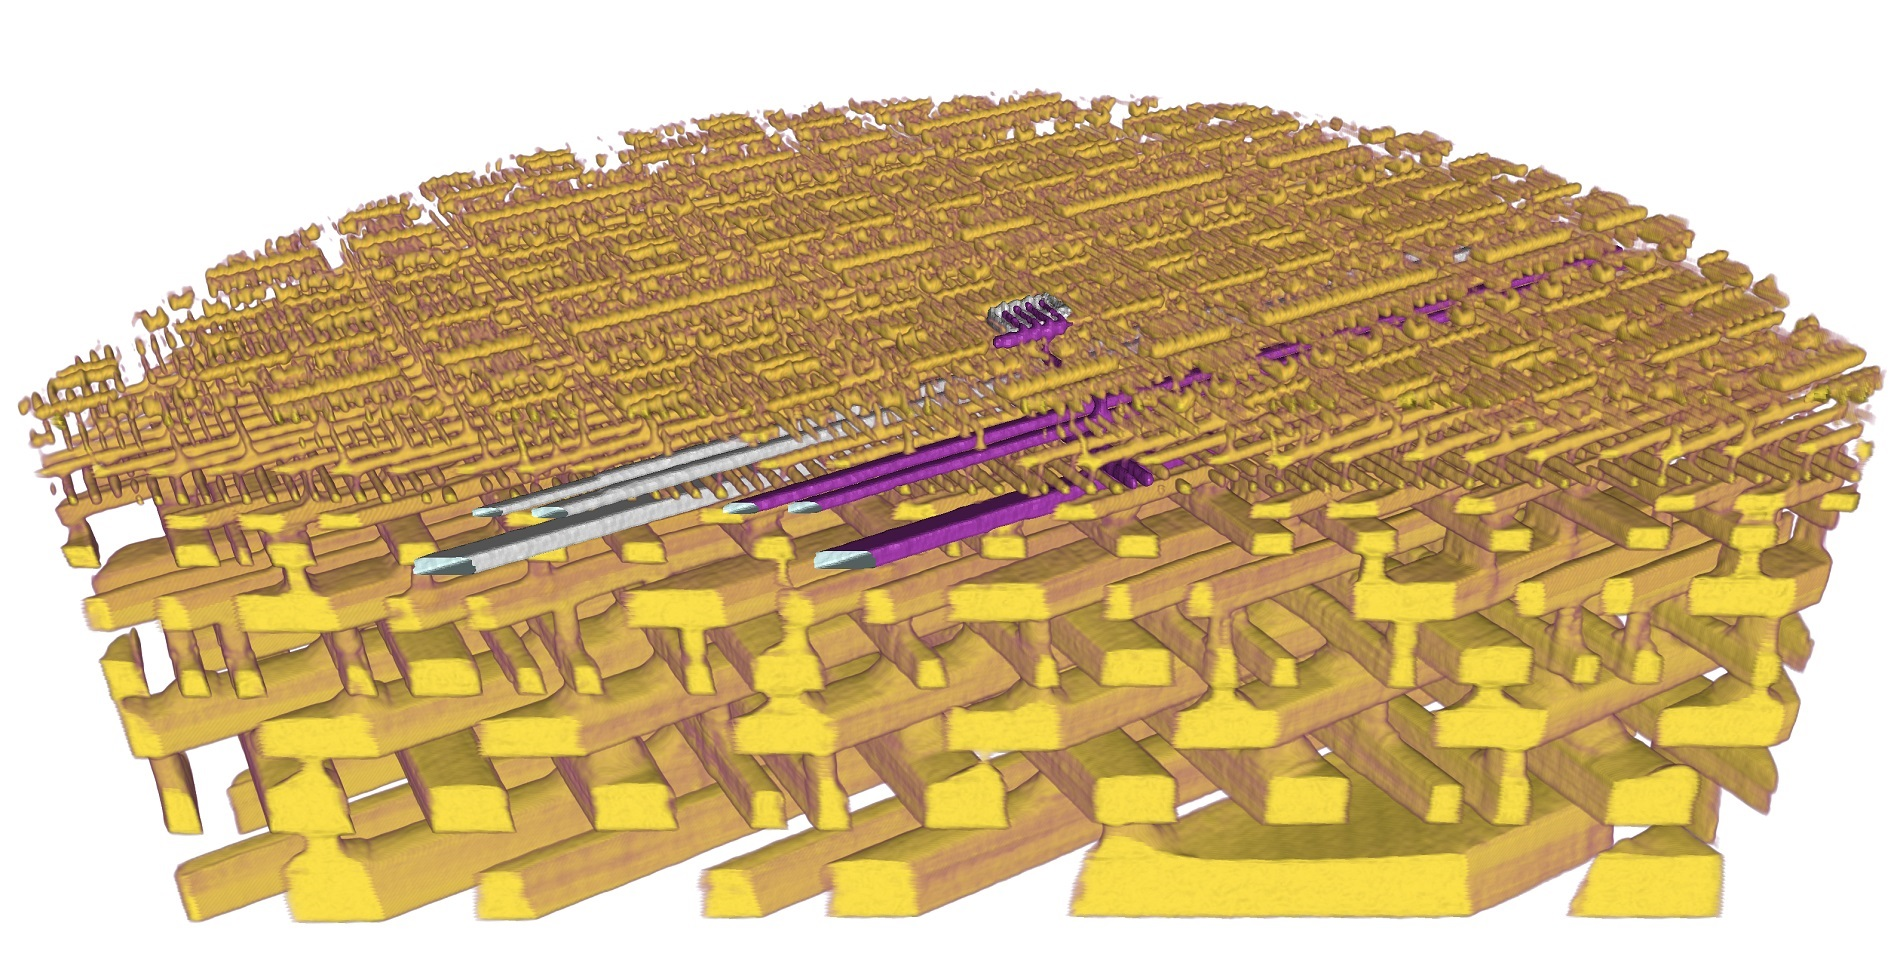 3-D representation of the internal structure of a microchip